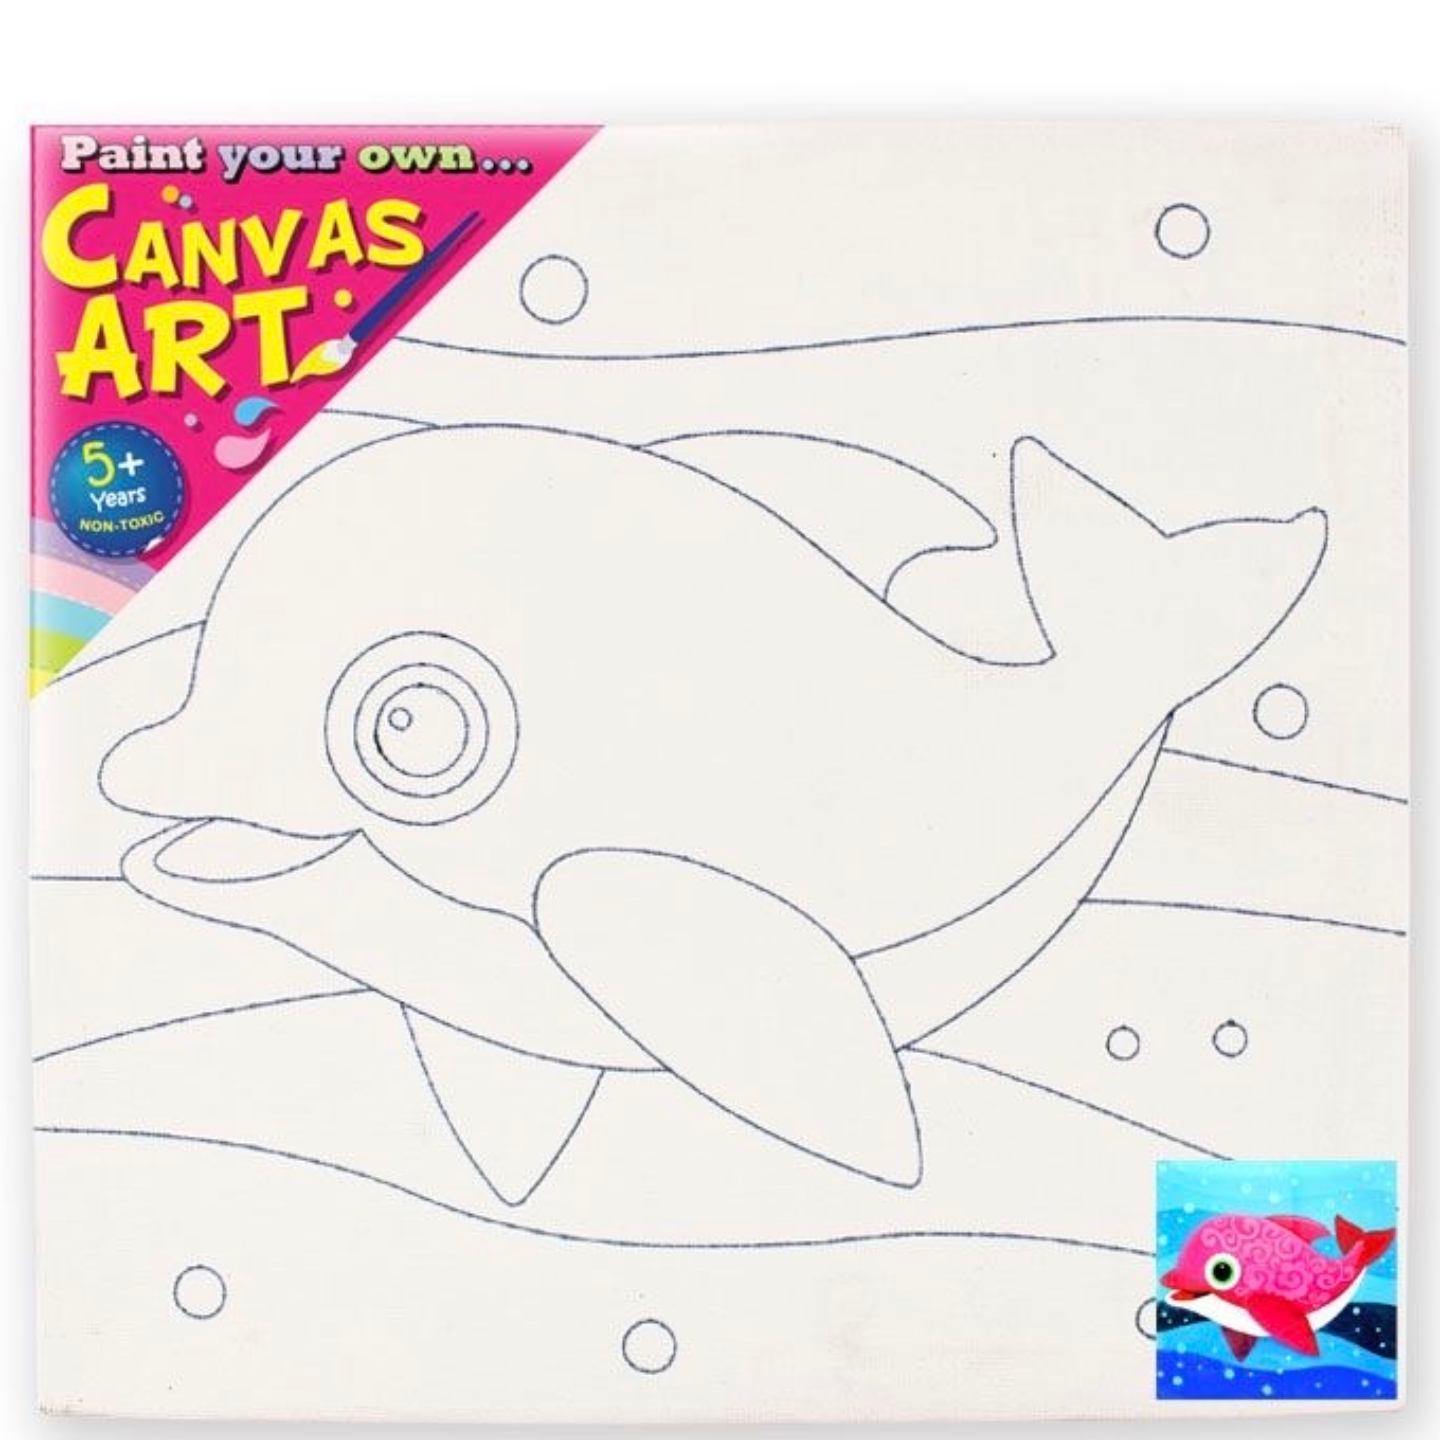 Canvas Wall Art Kit